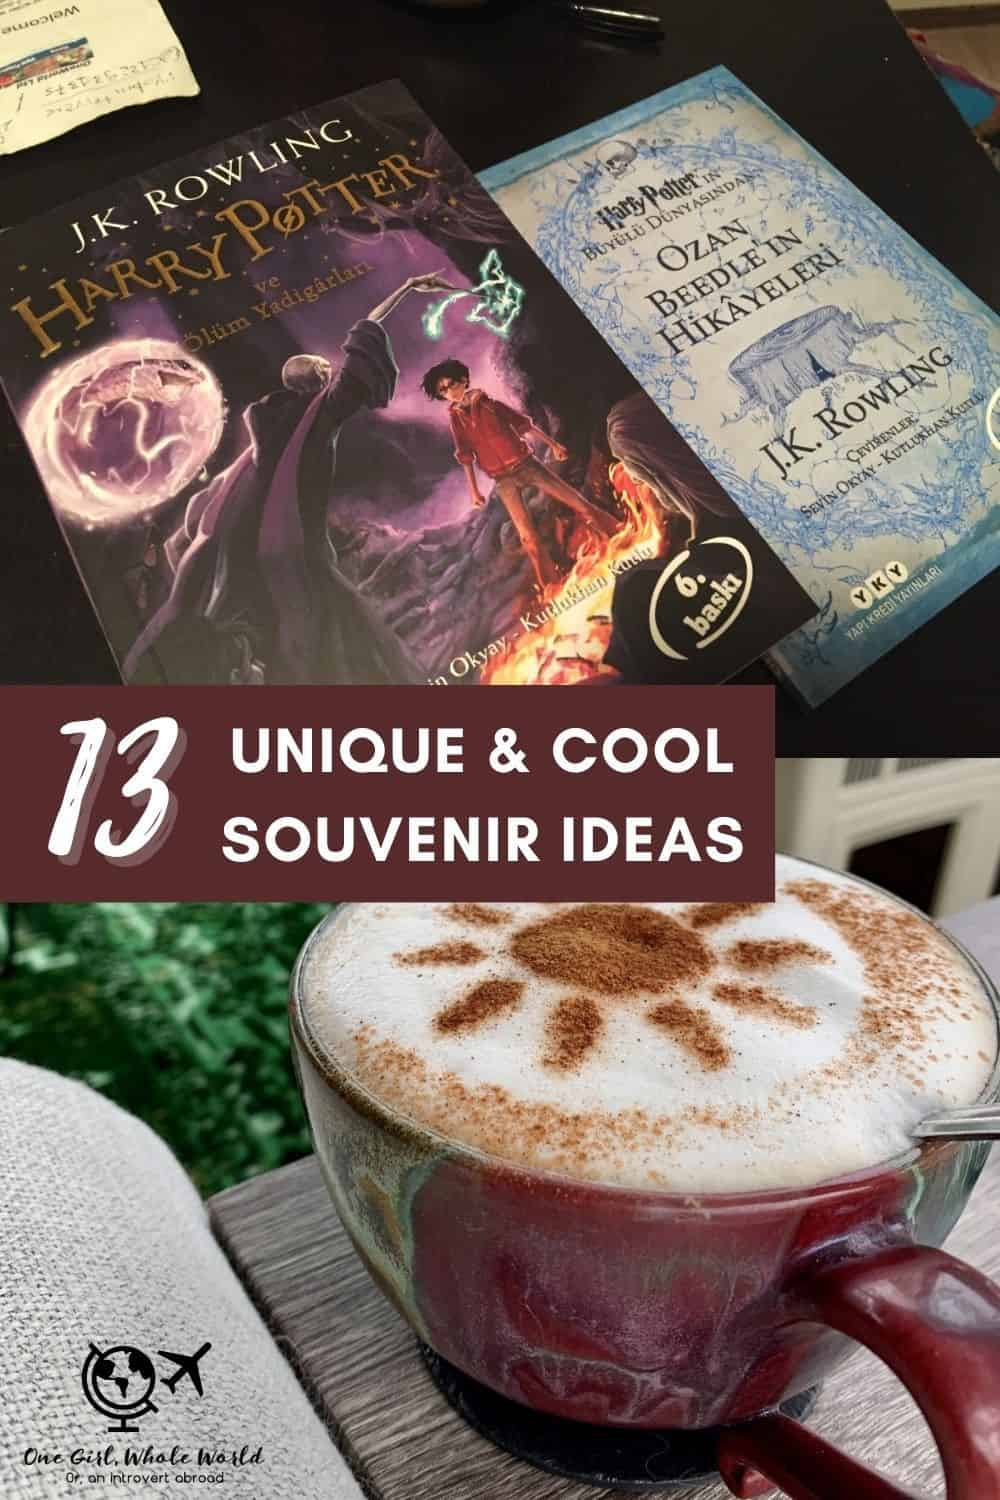 13 Cool & Unique Travel Souvenir Ideas | Inspiration for awesome souvenirs to look for on your travels...no more cheesy or tacky souvenirs! What to buy while traveling, what to look for in other countries. Travel tips. #souvenirs #traveltips